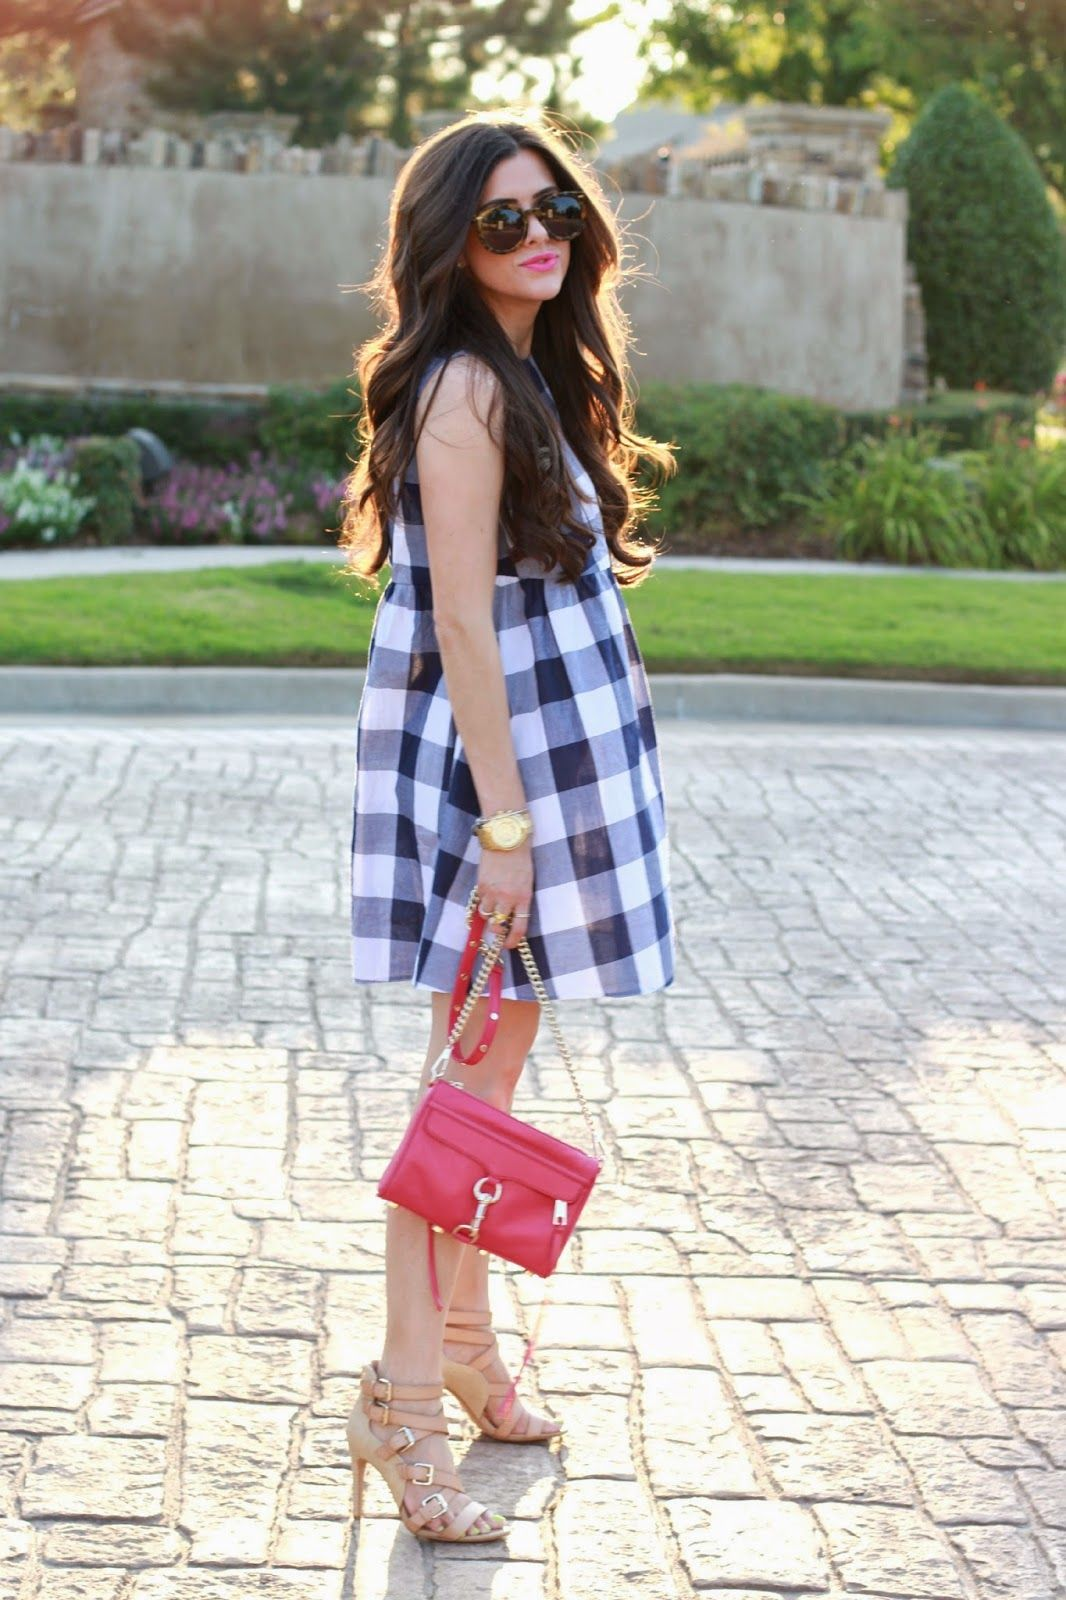 Gingham + red.